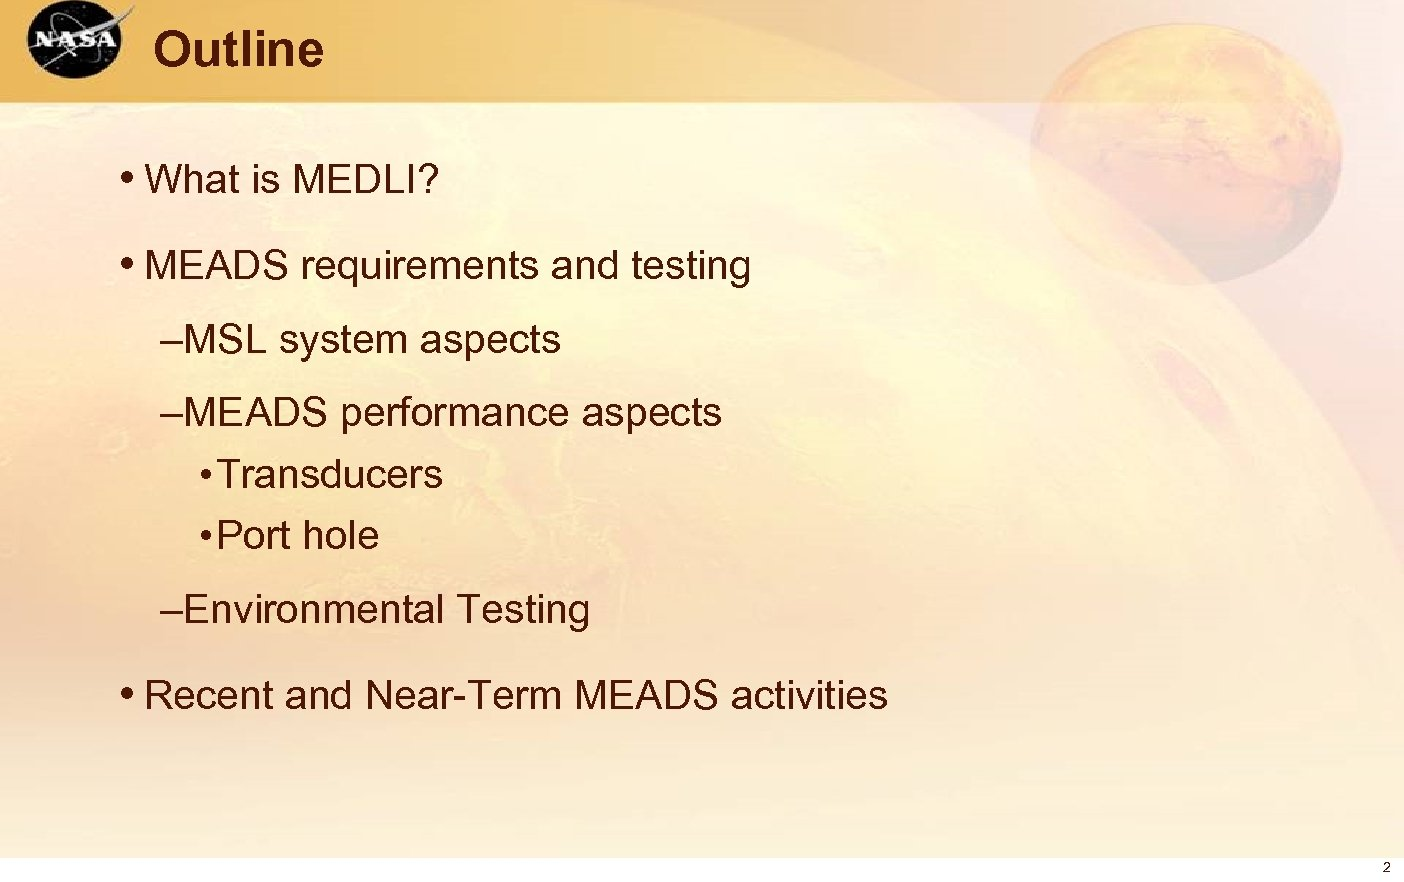 Outline • What is MEDLI? • MEADS requirements and testing –MSL system aspects –MEADS